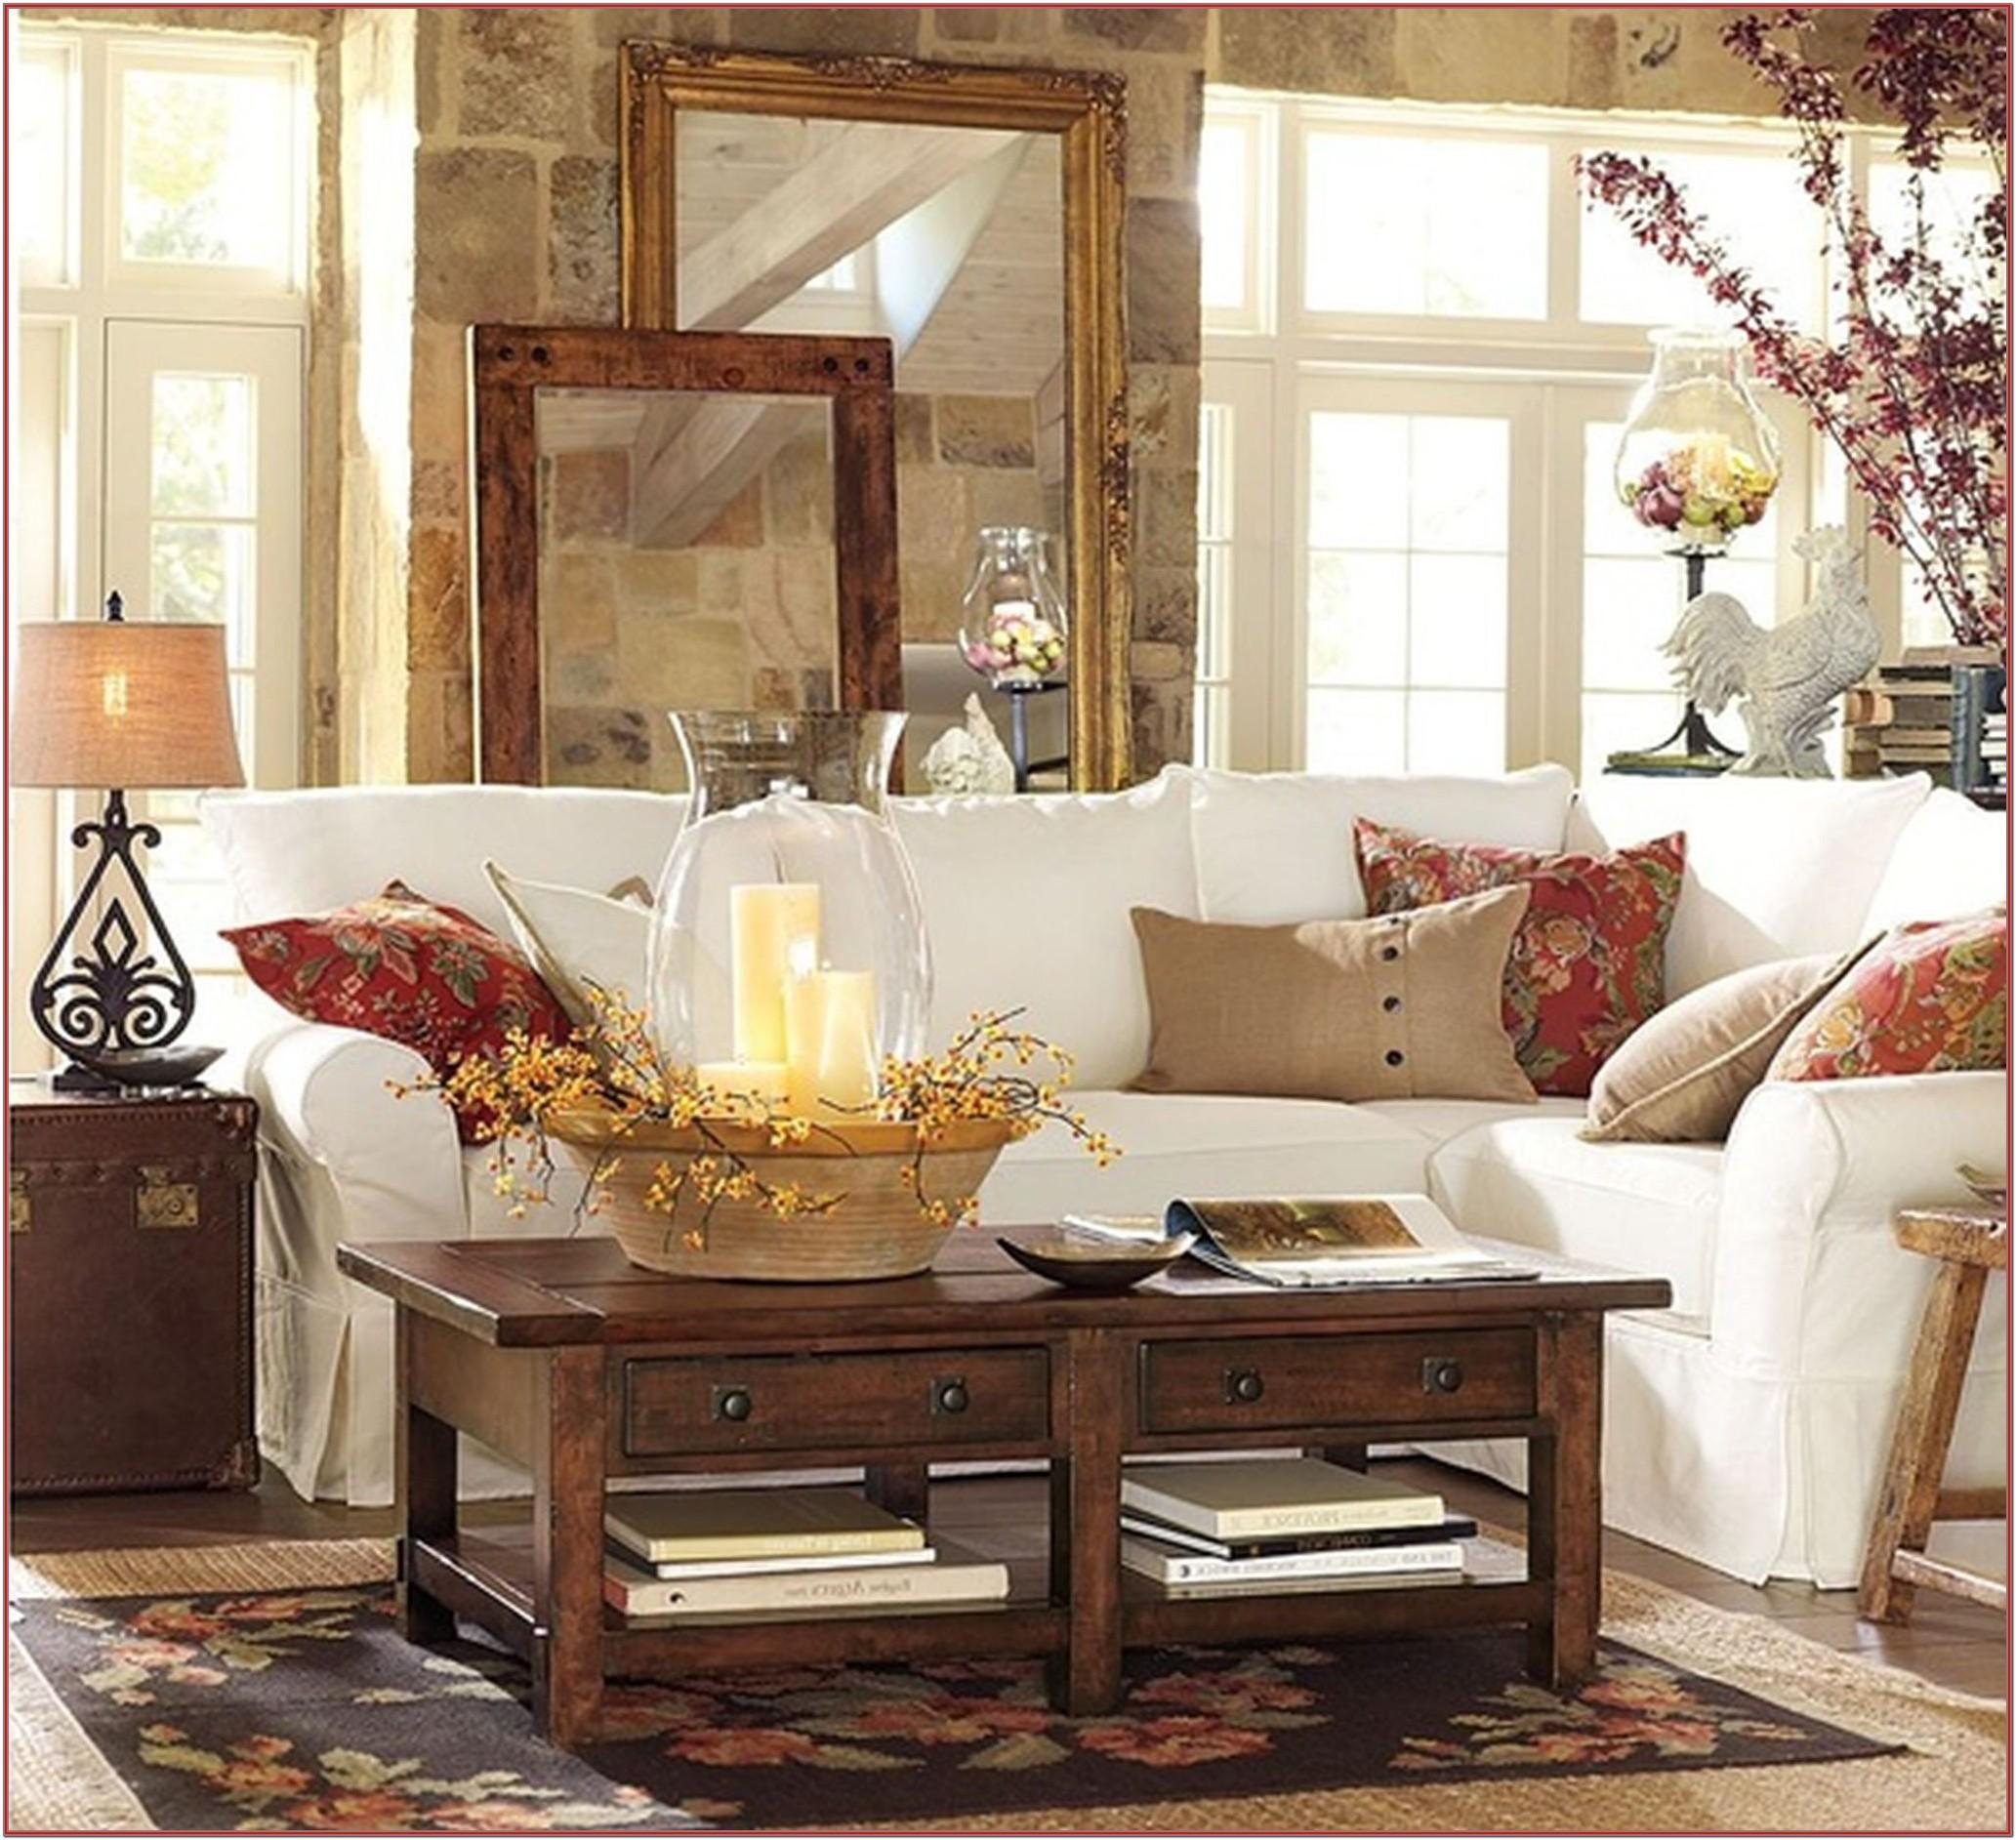 Pottery Barn Living Room Sets